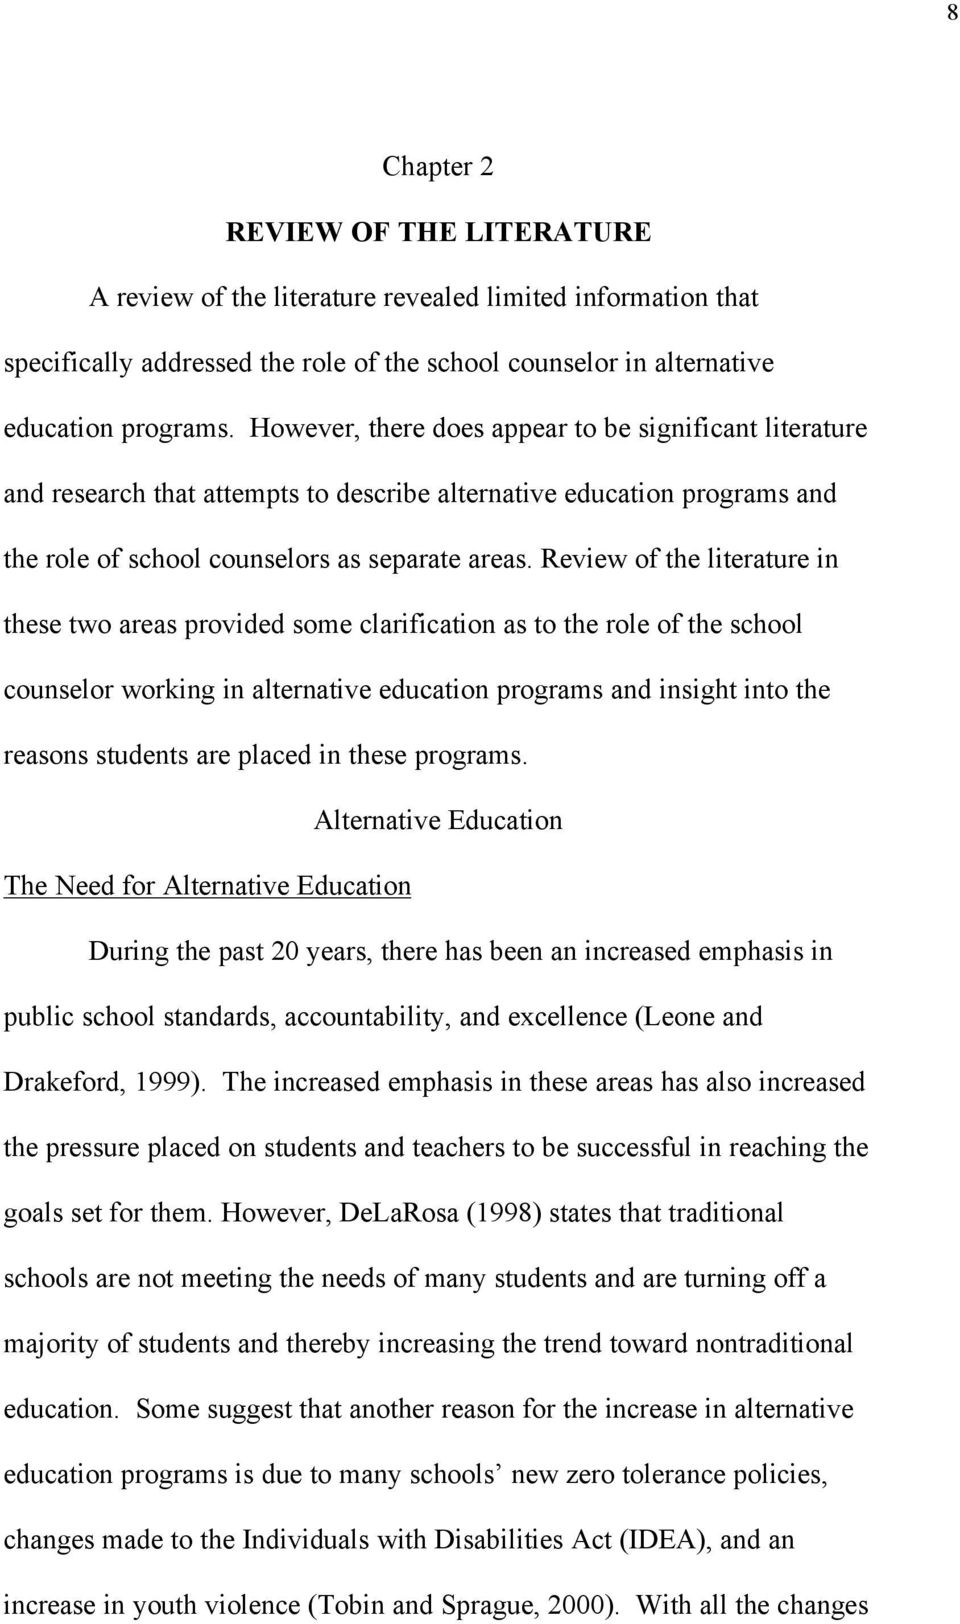 Review of the literature in these two areas provided some clarification as to the role of the school counselor working in alternative education programs and insight into the reasons students are